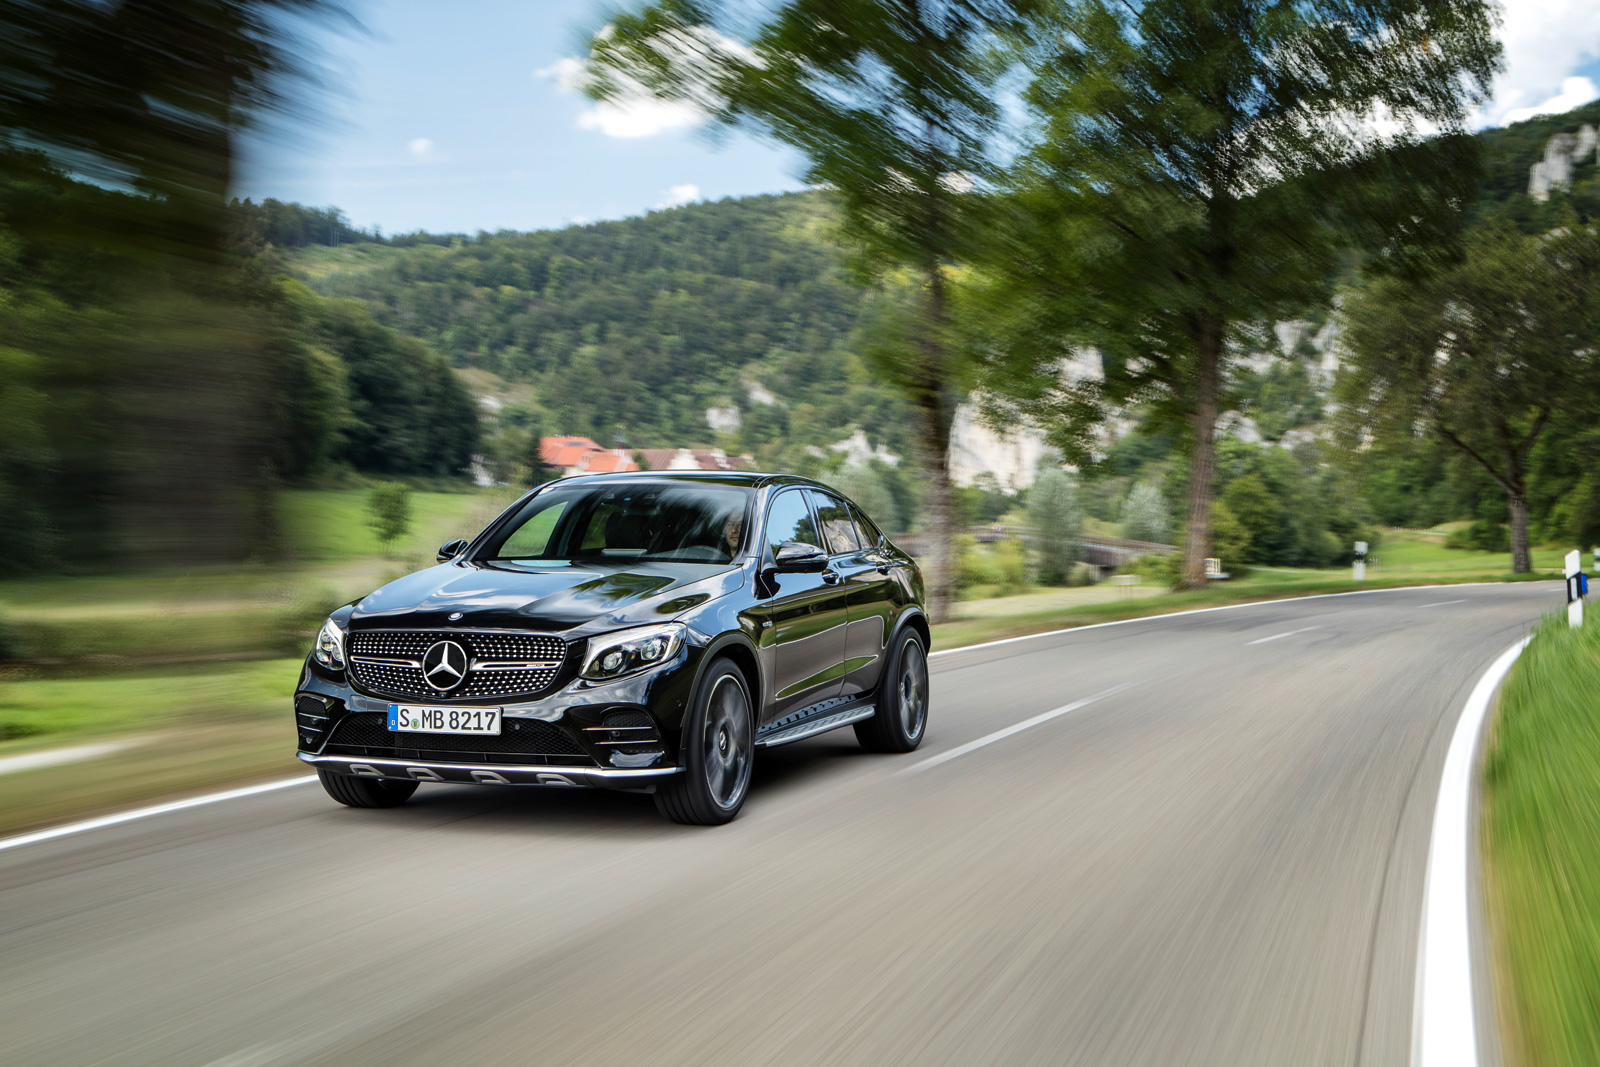 http://www.autoguide.com/blog/wp-content/gallery/mercedes-amg-glc43-coupe-official-gallery/mercedes-amg-glc-43-coupe-08.jpg